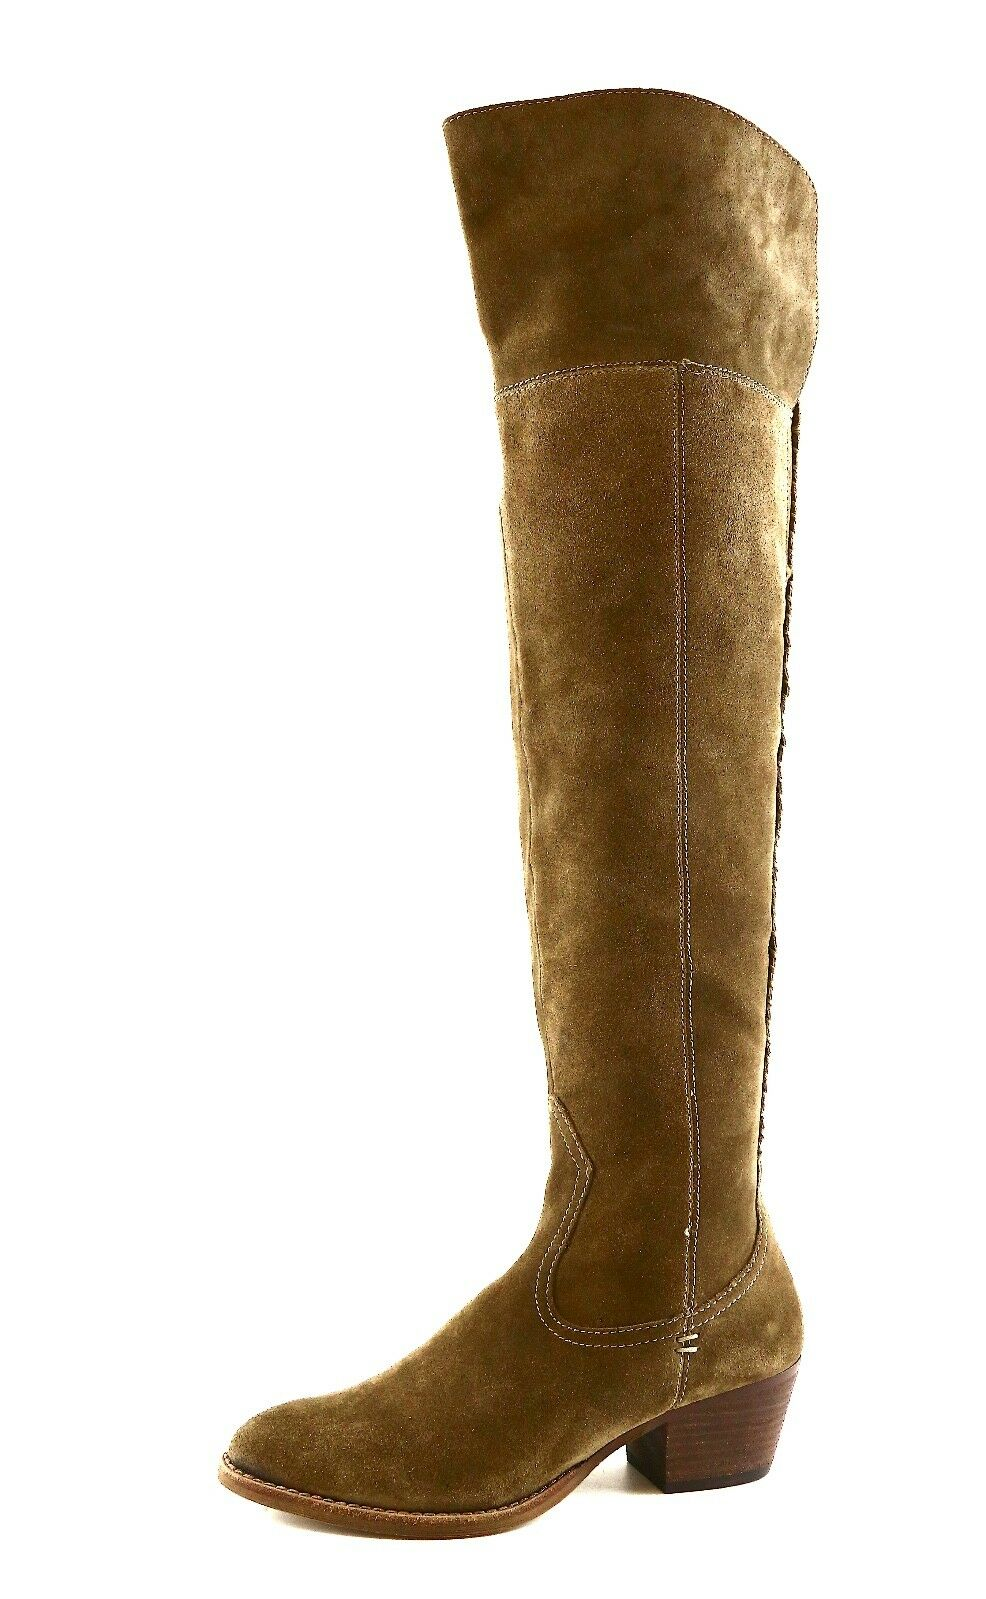 Dolce Vita Silas Over Knee Suede Boot Brown Donna Sz 7 5818 *